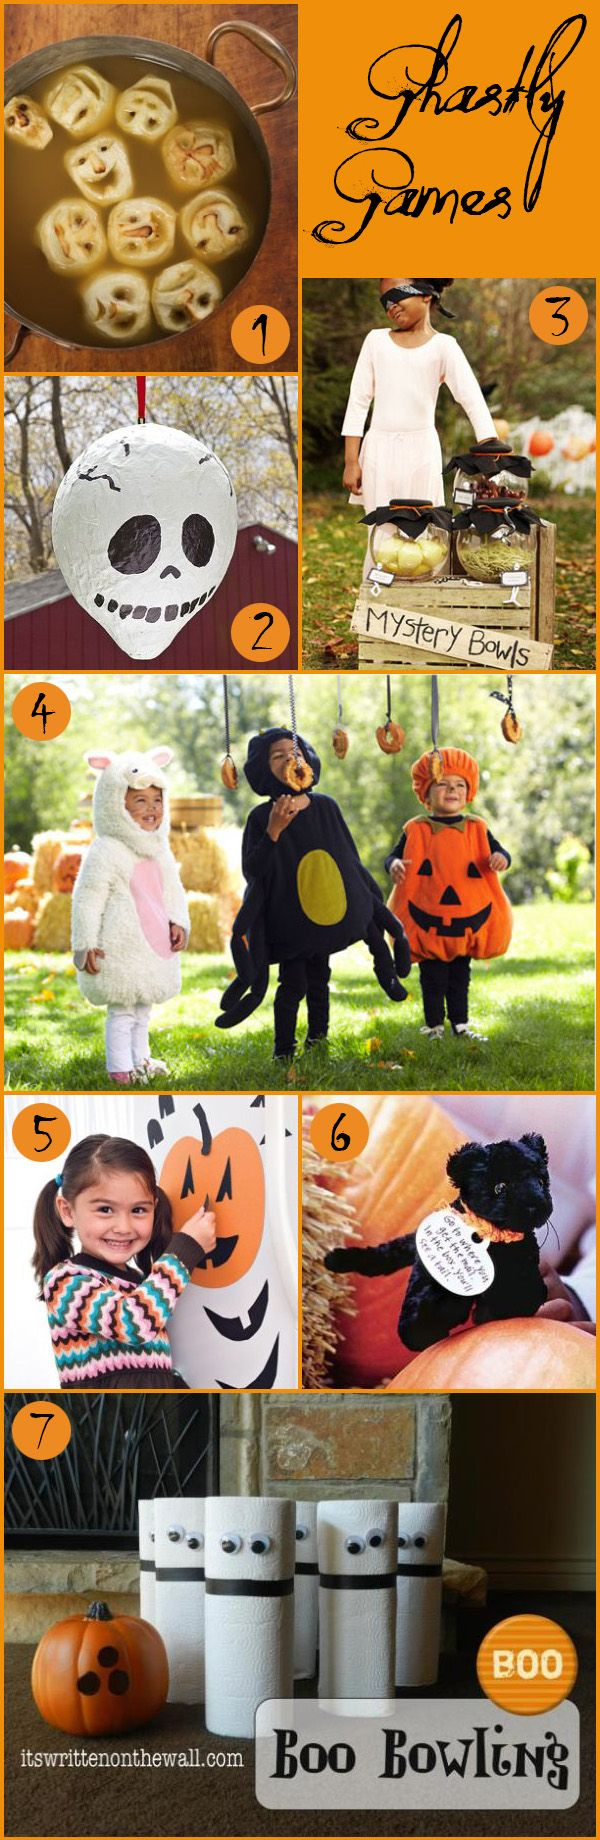 games ideas for Halloween, kids games, halloween games, apple bobbing, mystery box, treasure hunt, string doughnuts, spooky bowling, pinata